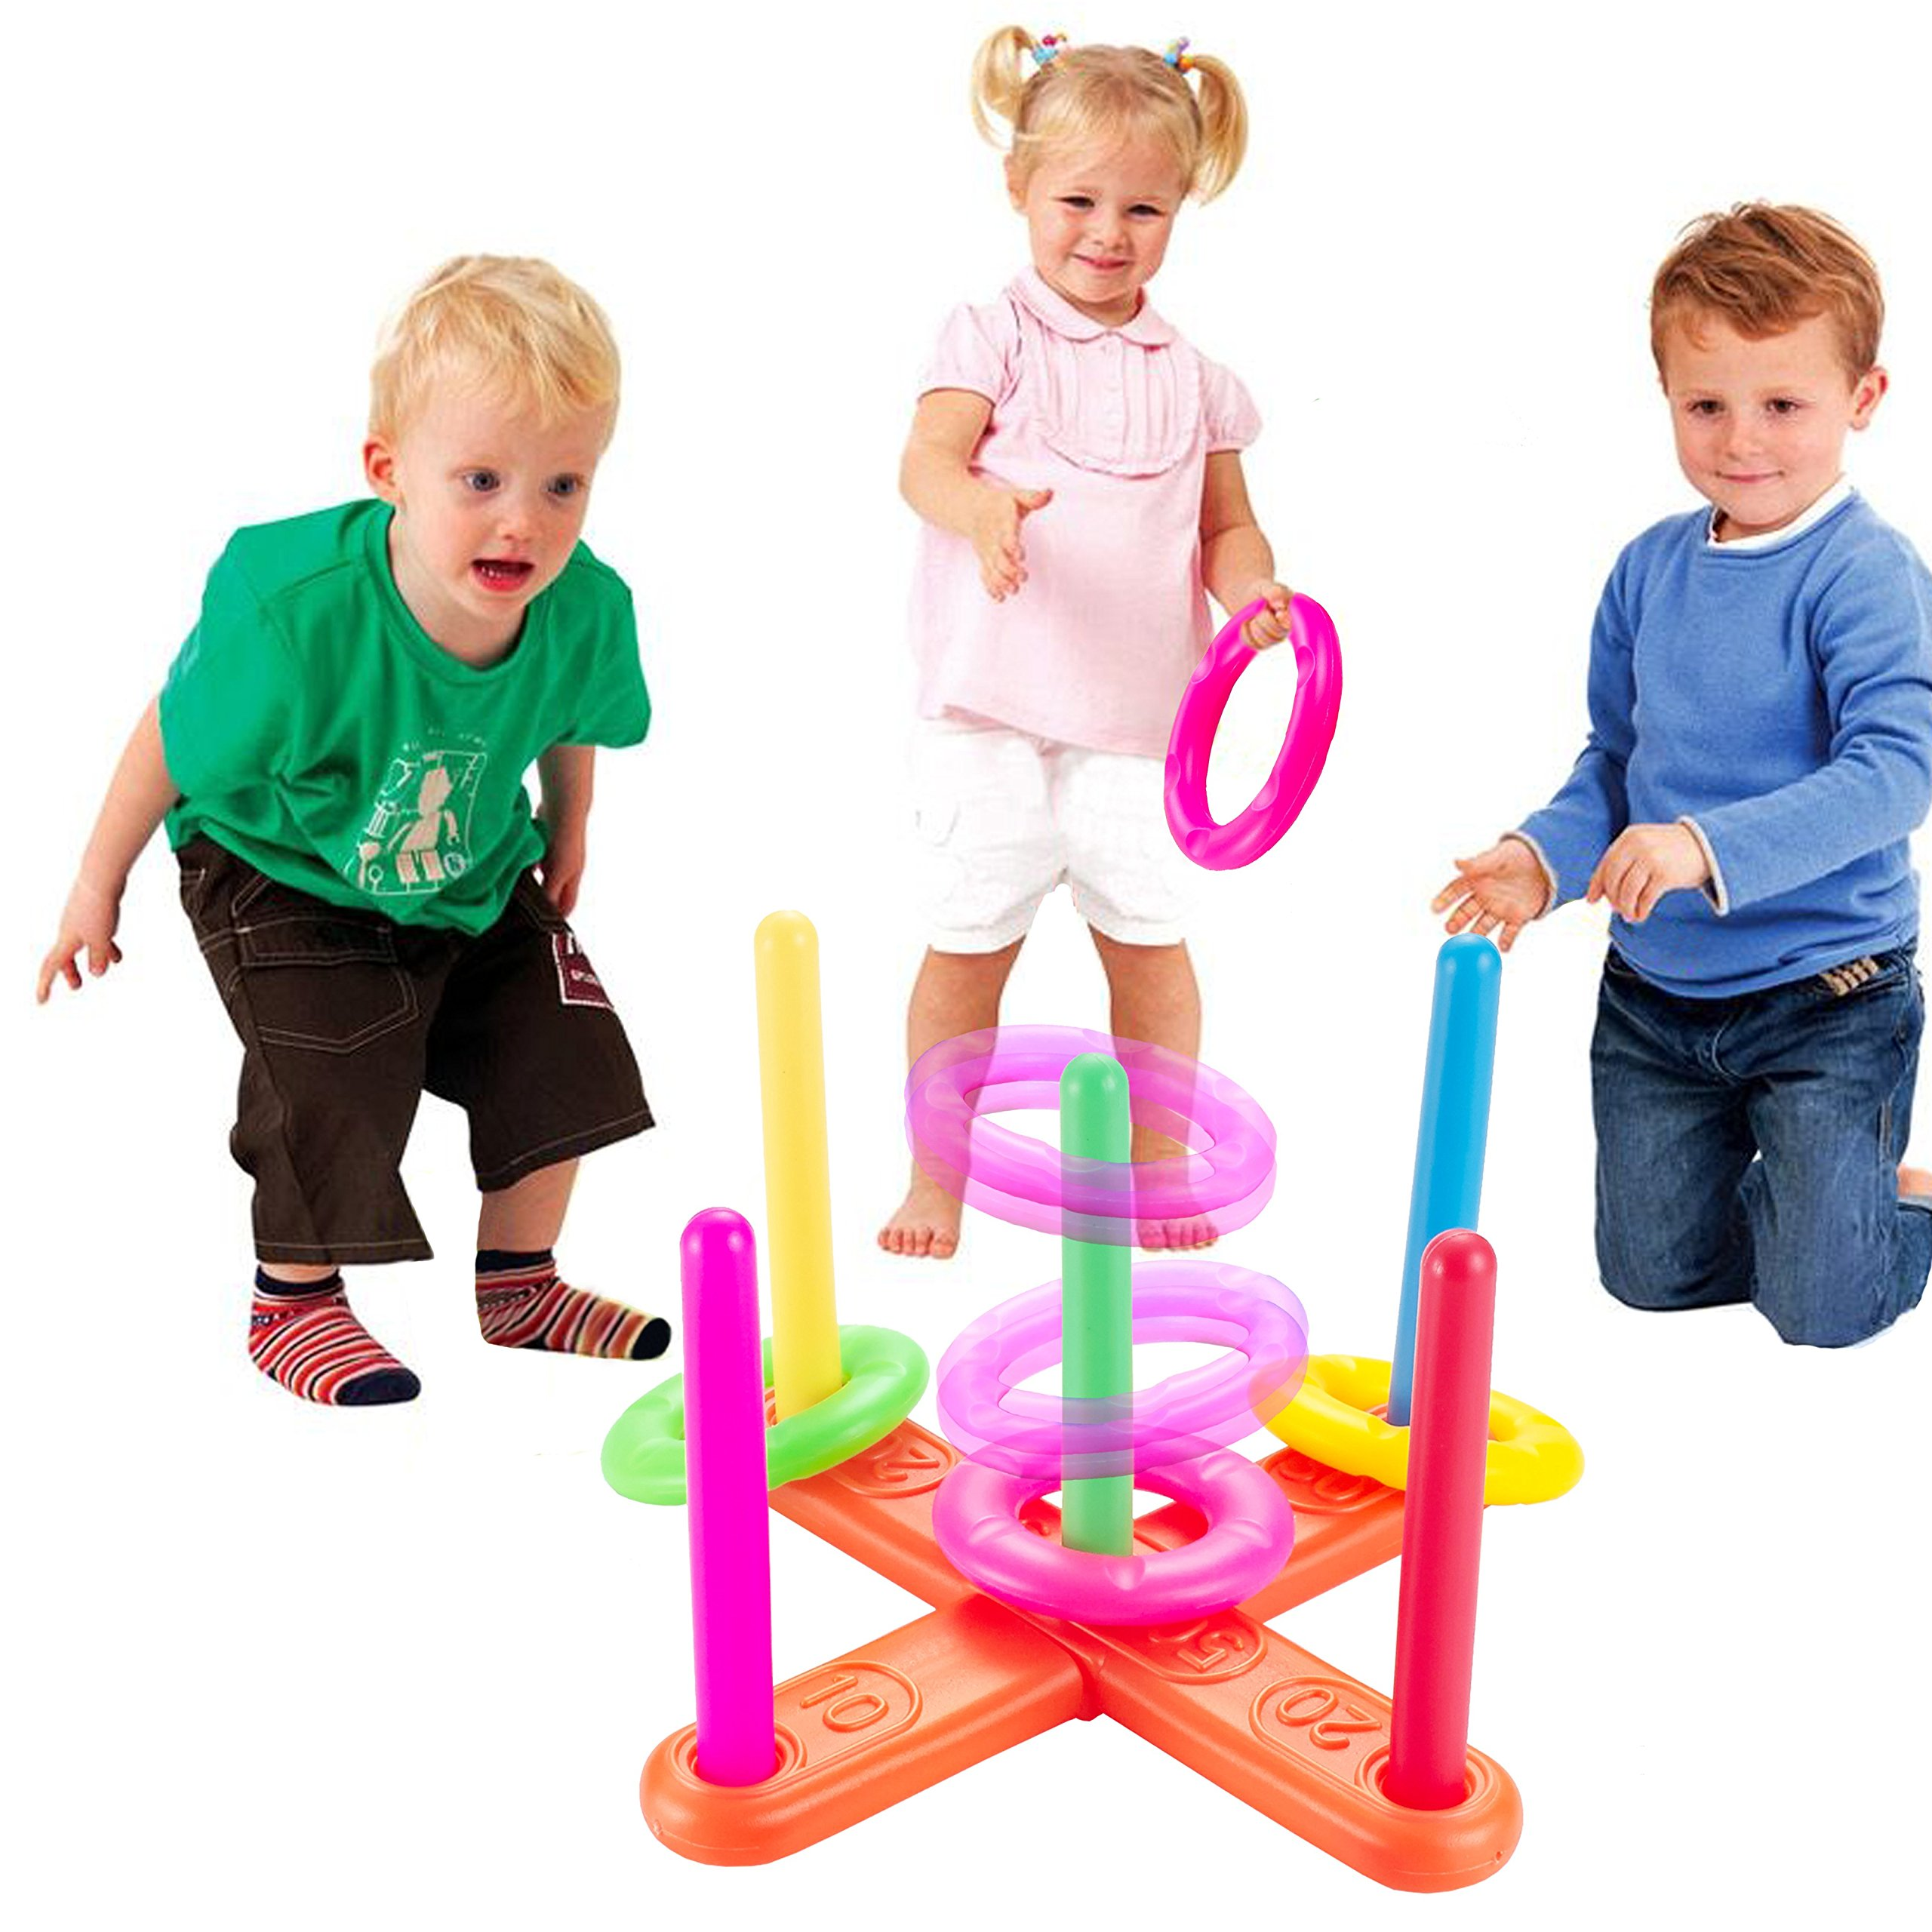 Minihorse-Ring Toss Game,Kids Games Improve Eye-Hand Coordination and Fine Motor Skills,Loop Hoop Ring Toss Game,Outdoor/Indoor Quoits Ring Game For Kids or Family(small) Gift for Kids 3-7 Years Old